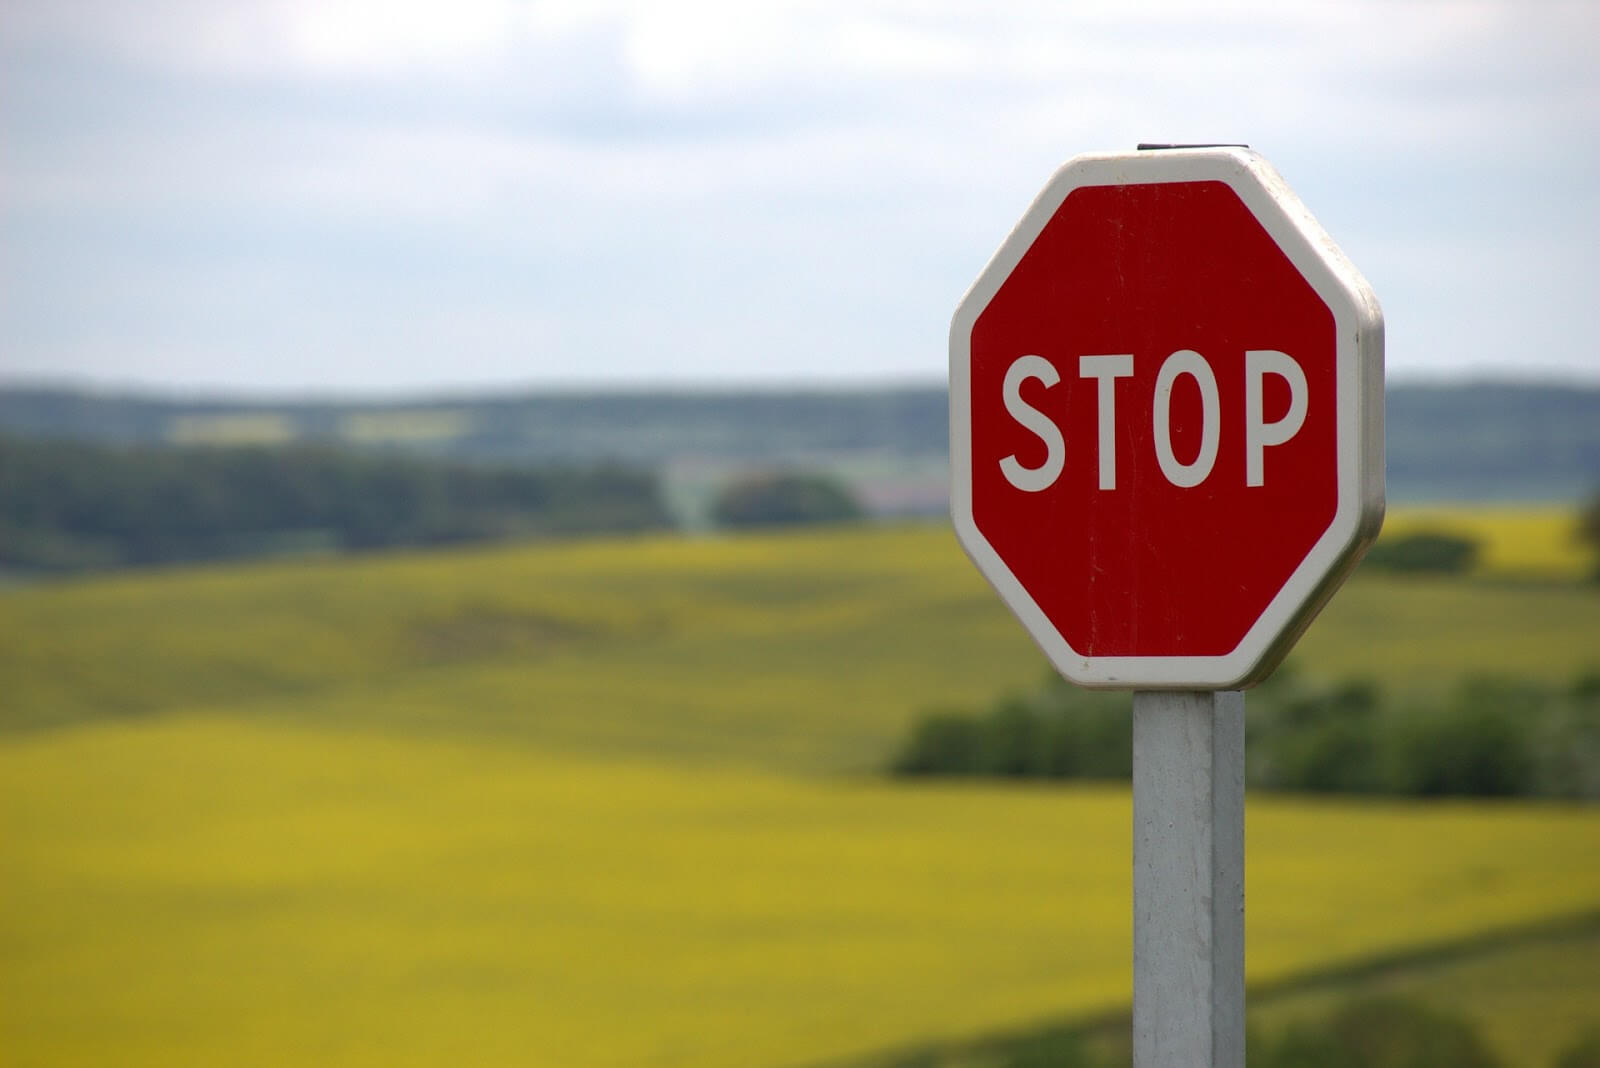 Stop sign: when shouldn't Sildenafil tablets be used